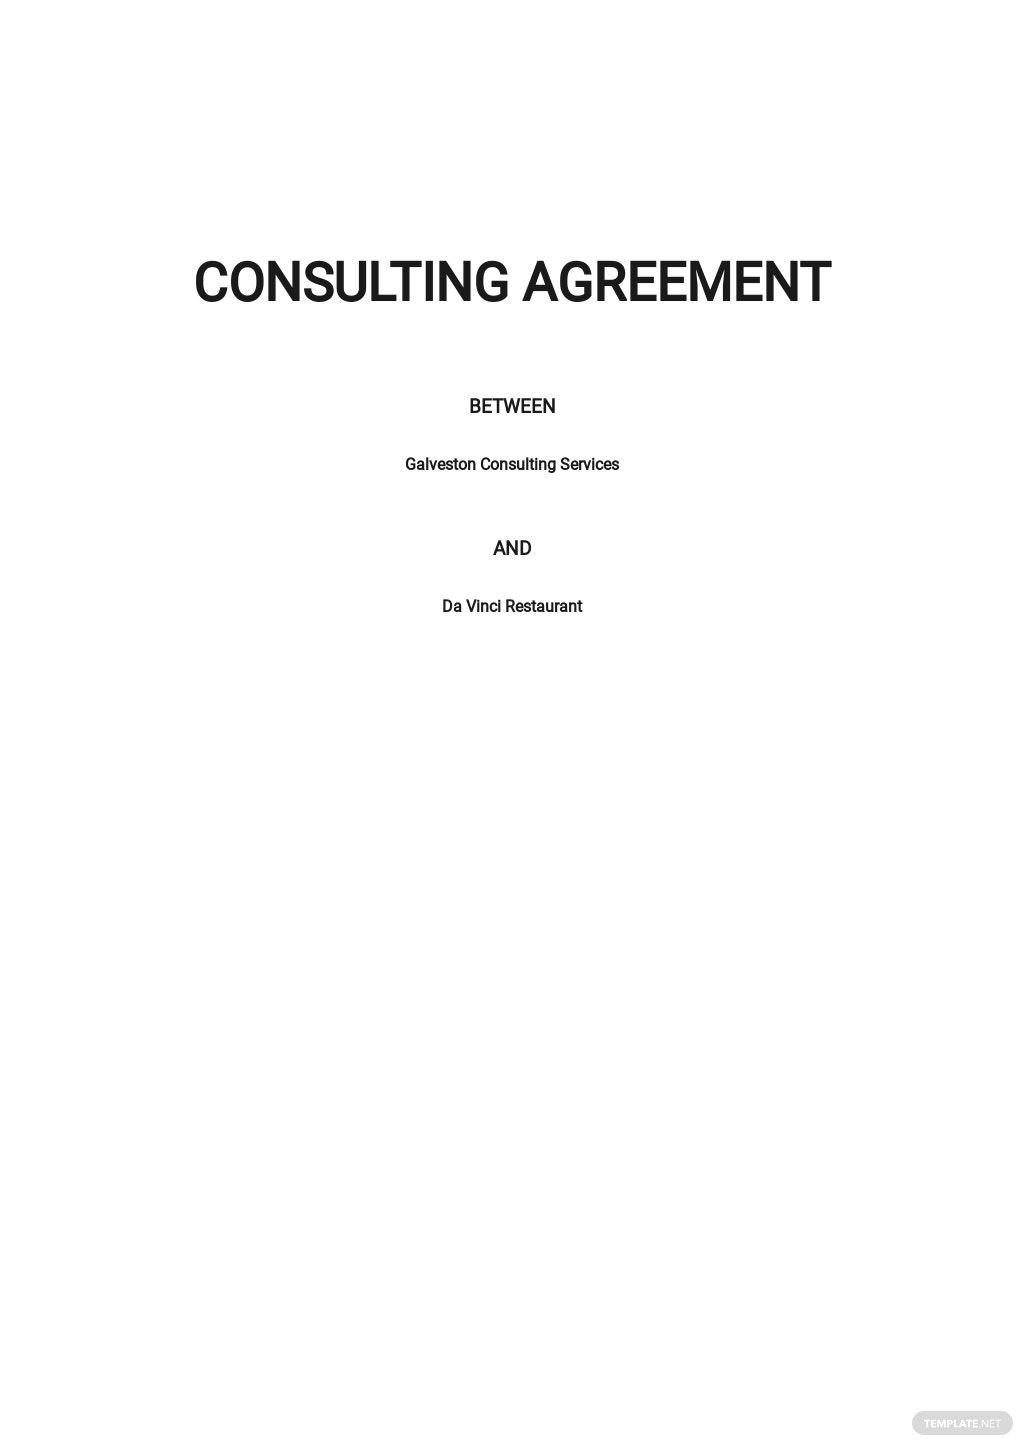 Consulting Agreement Template.jpe